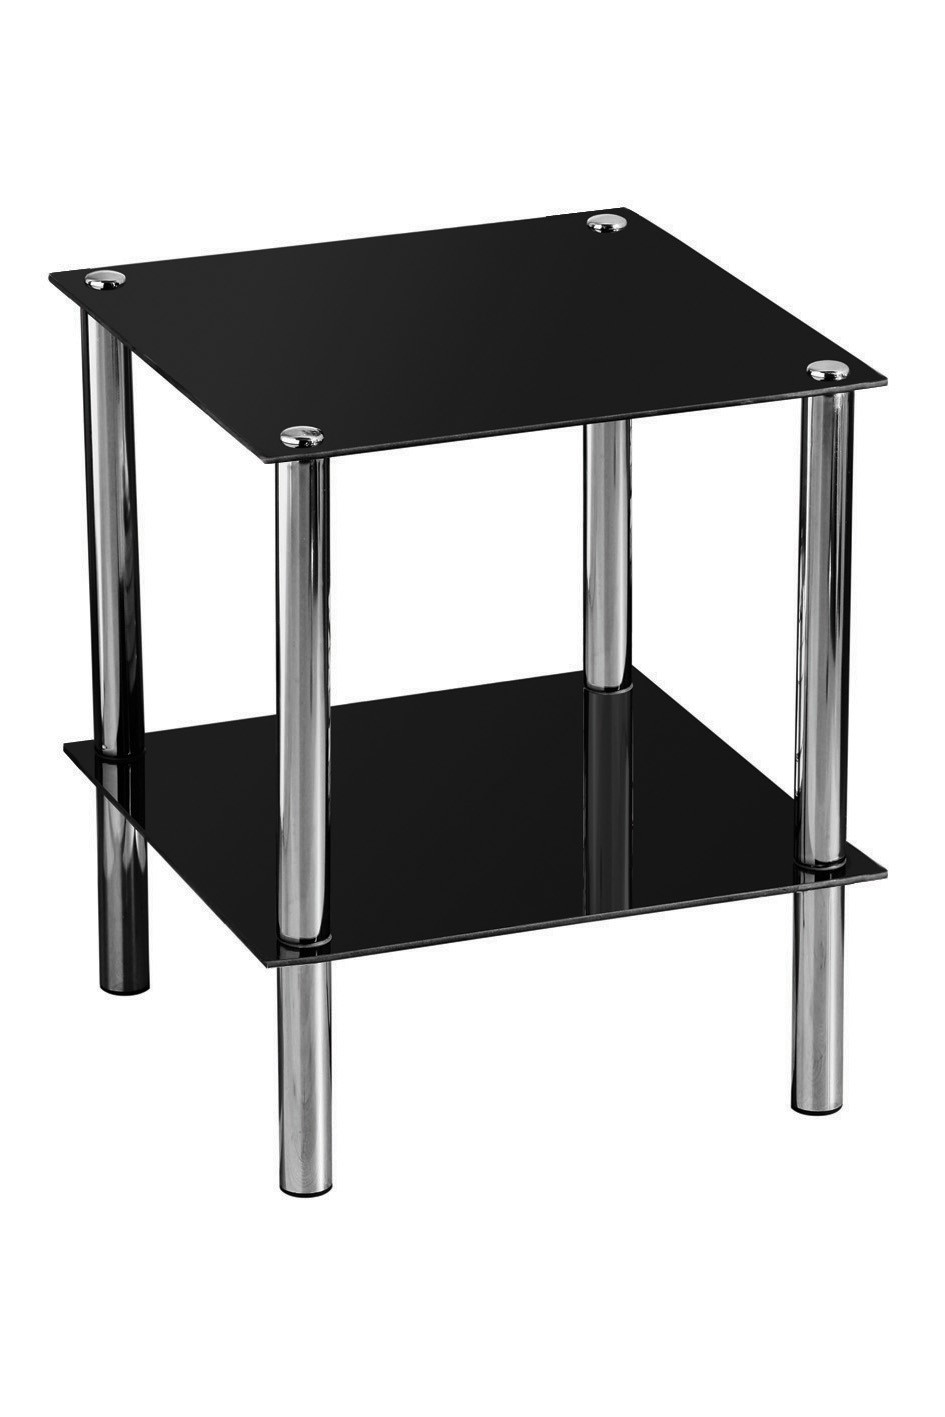 Two Tier End Table with Black Glass Shelves and Chrome Frame